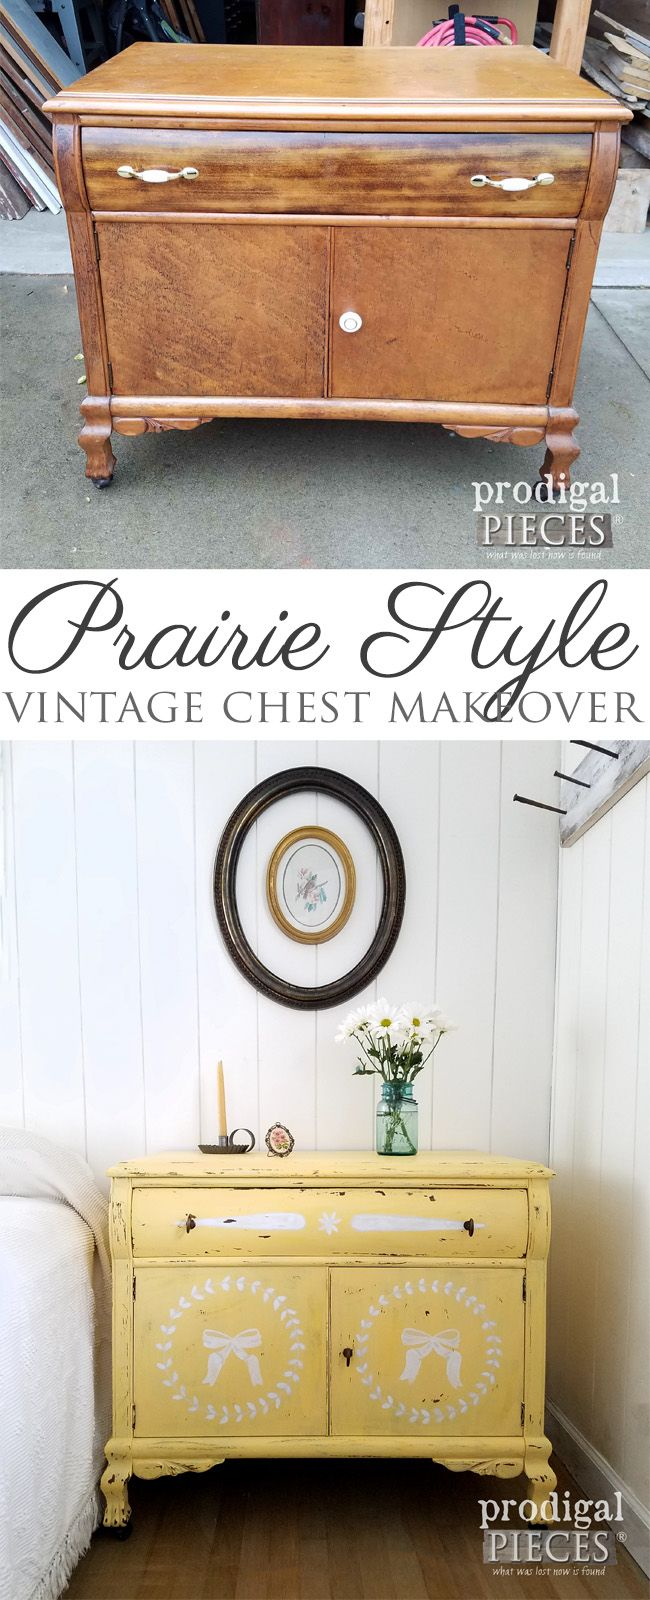 how to wallpaper furniture. prairie style vintage chest makeover by larissa of prodigal pieces prodigalpiecescom how to wallpaper furniture p